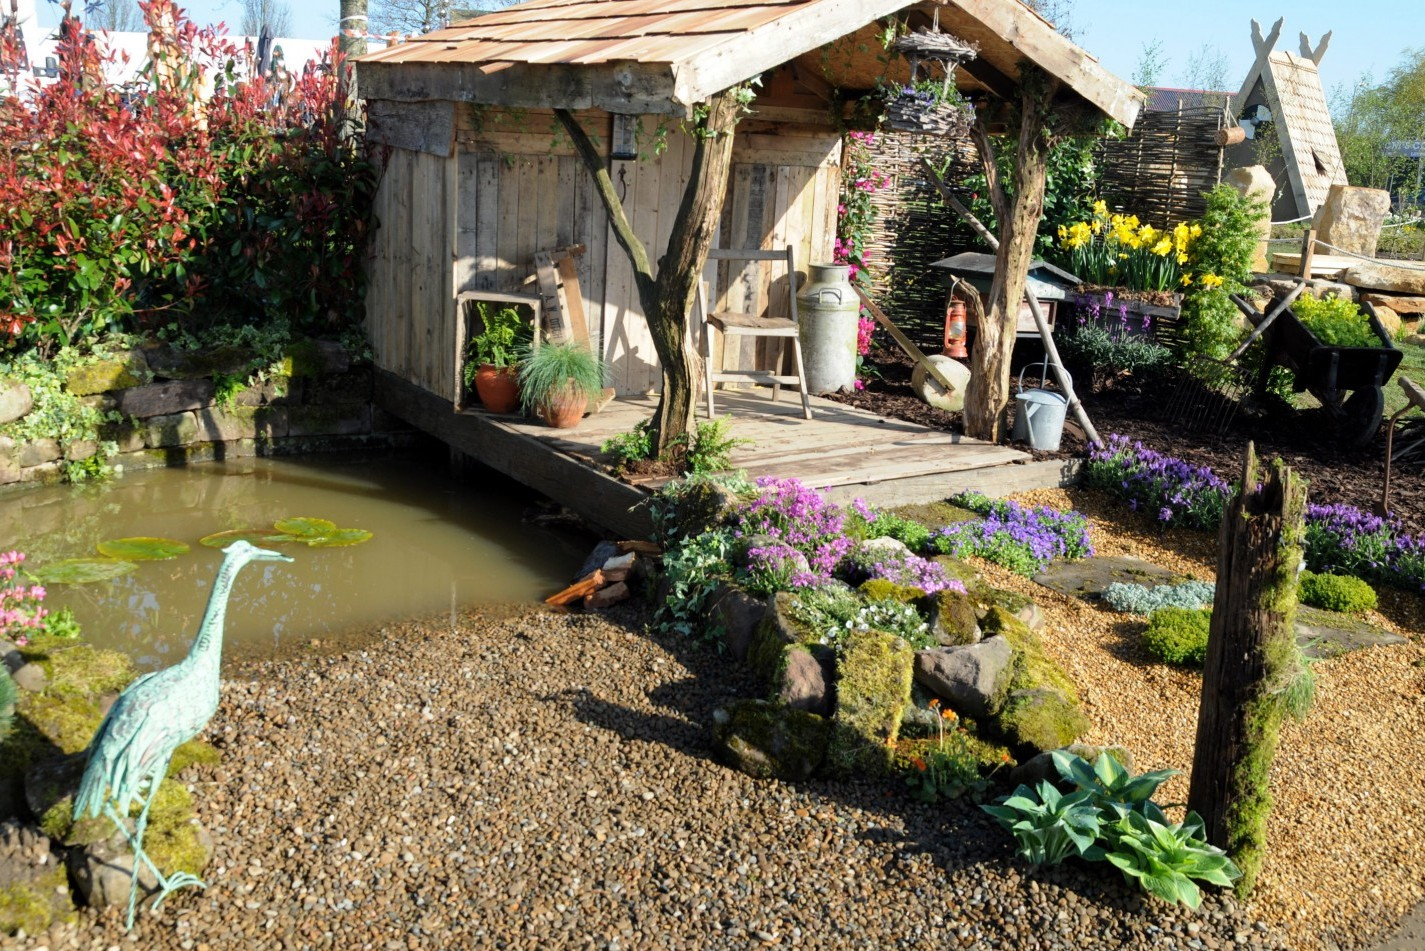 Harrogate Flower Show Greatdays Group Travel